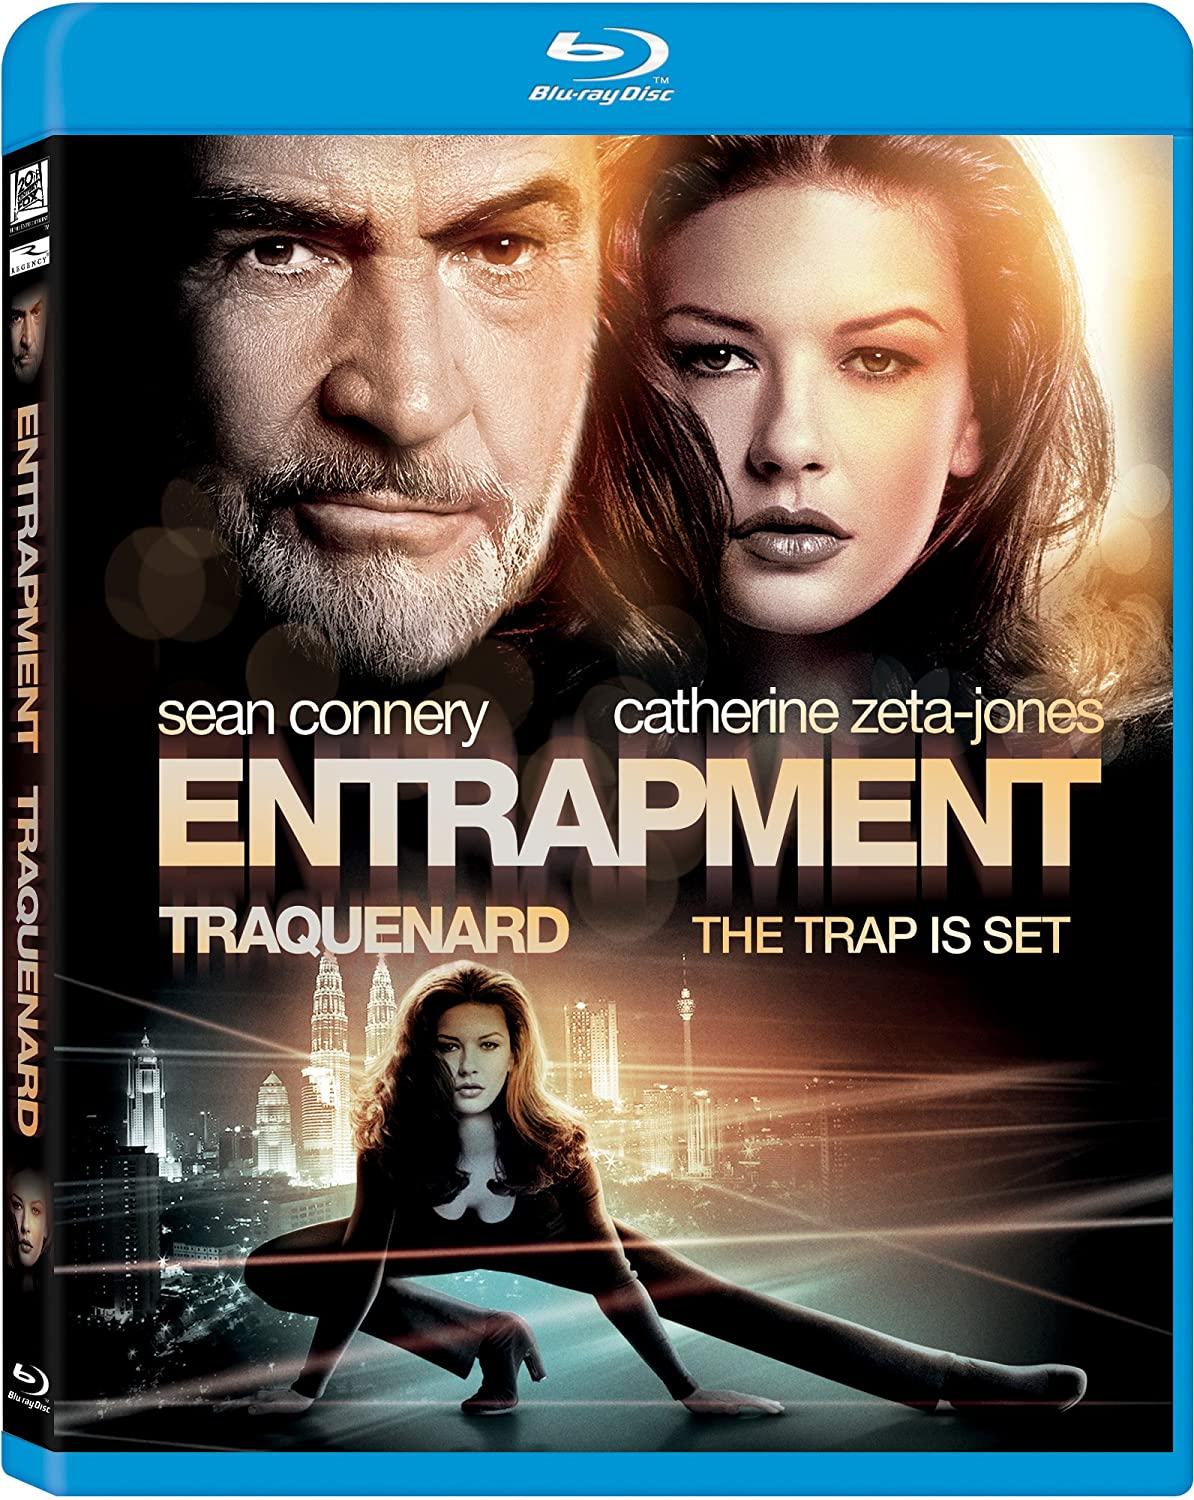 entrapment movie hd free download